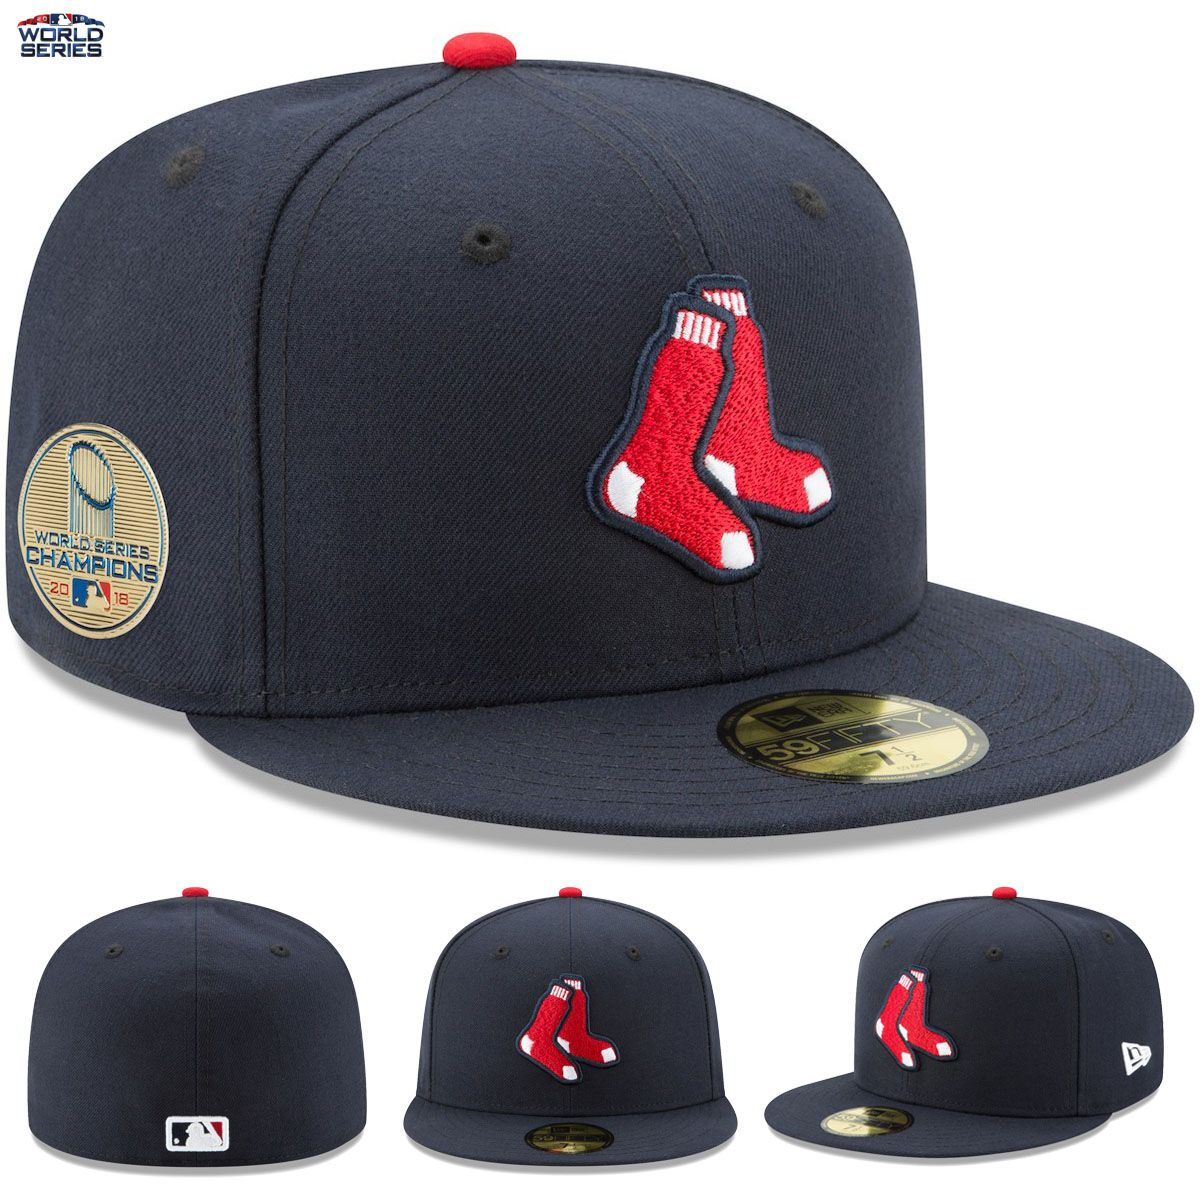 Boston Red Sox New Era 2018 World Series Champions 59FIFTY Fitted Hat Cap  Patch THEY HAVE DONE IT!! Your Boston Red Sox are 2018 World Series  Champions 47c34453545